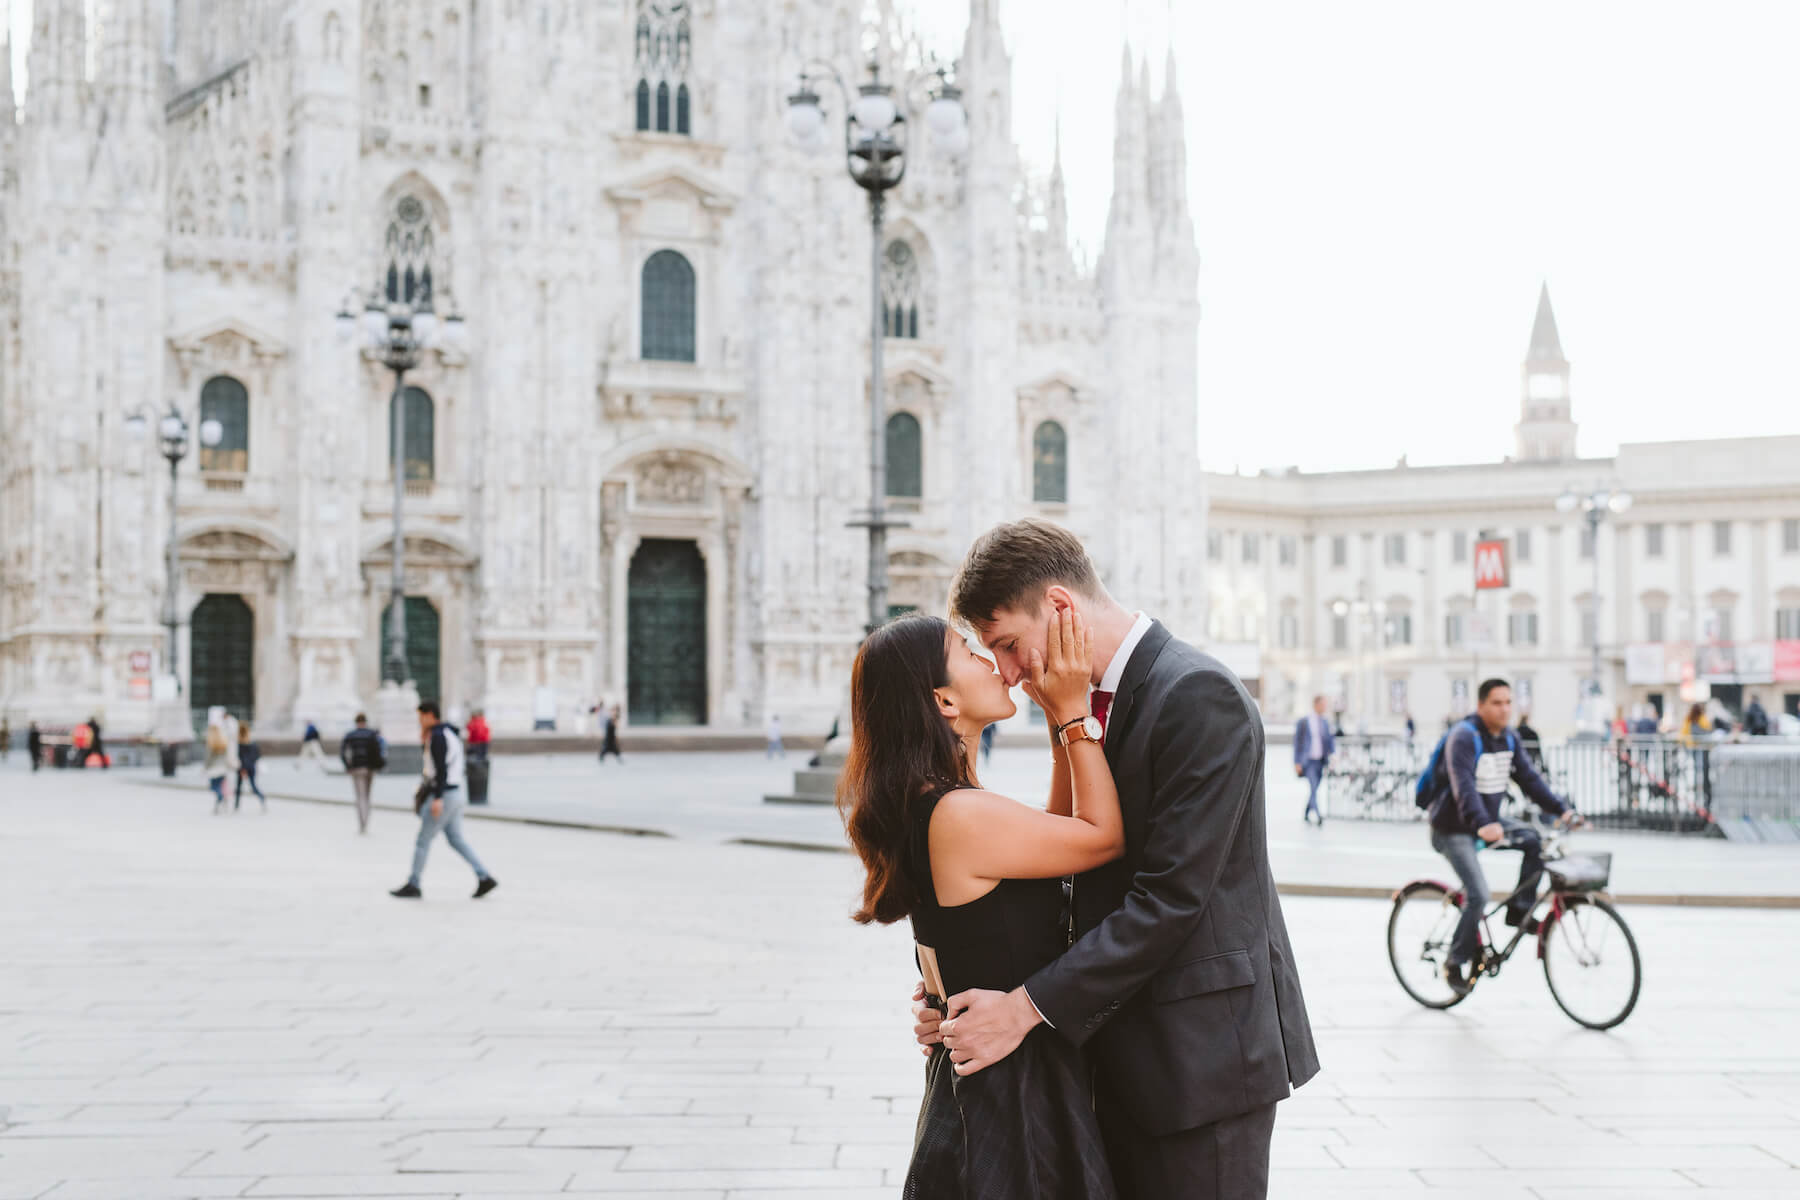 couple holding each other in front of Duomo di Milano, Milan, Italy